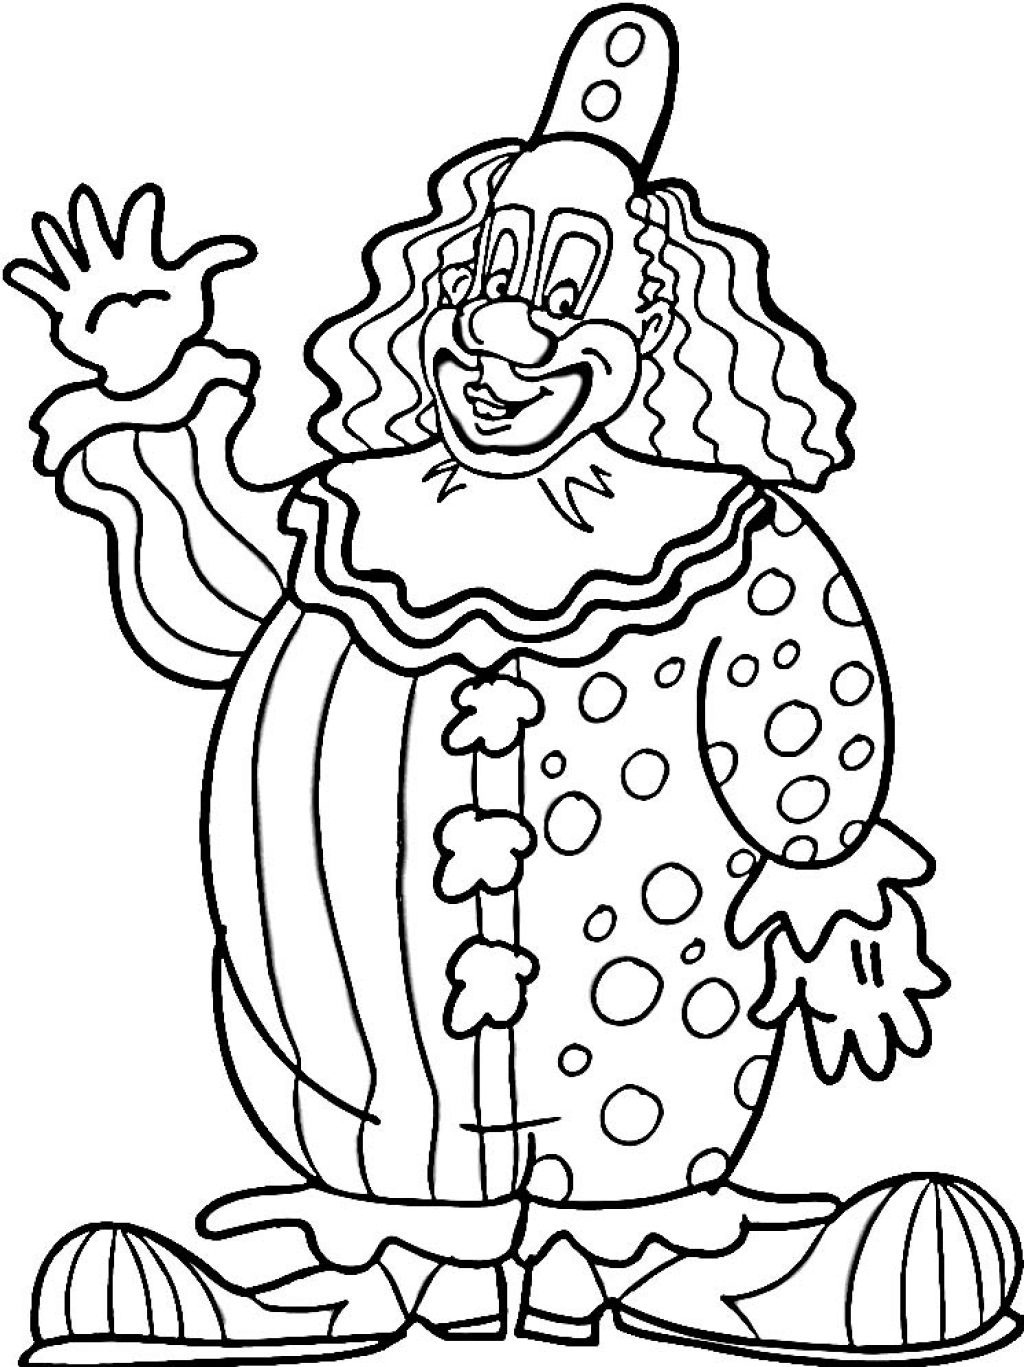 free clown coloring pages colour drawing free hd wallpapers april 2014 coloring free clown pages